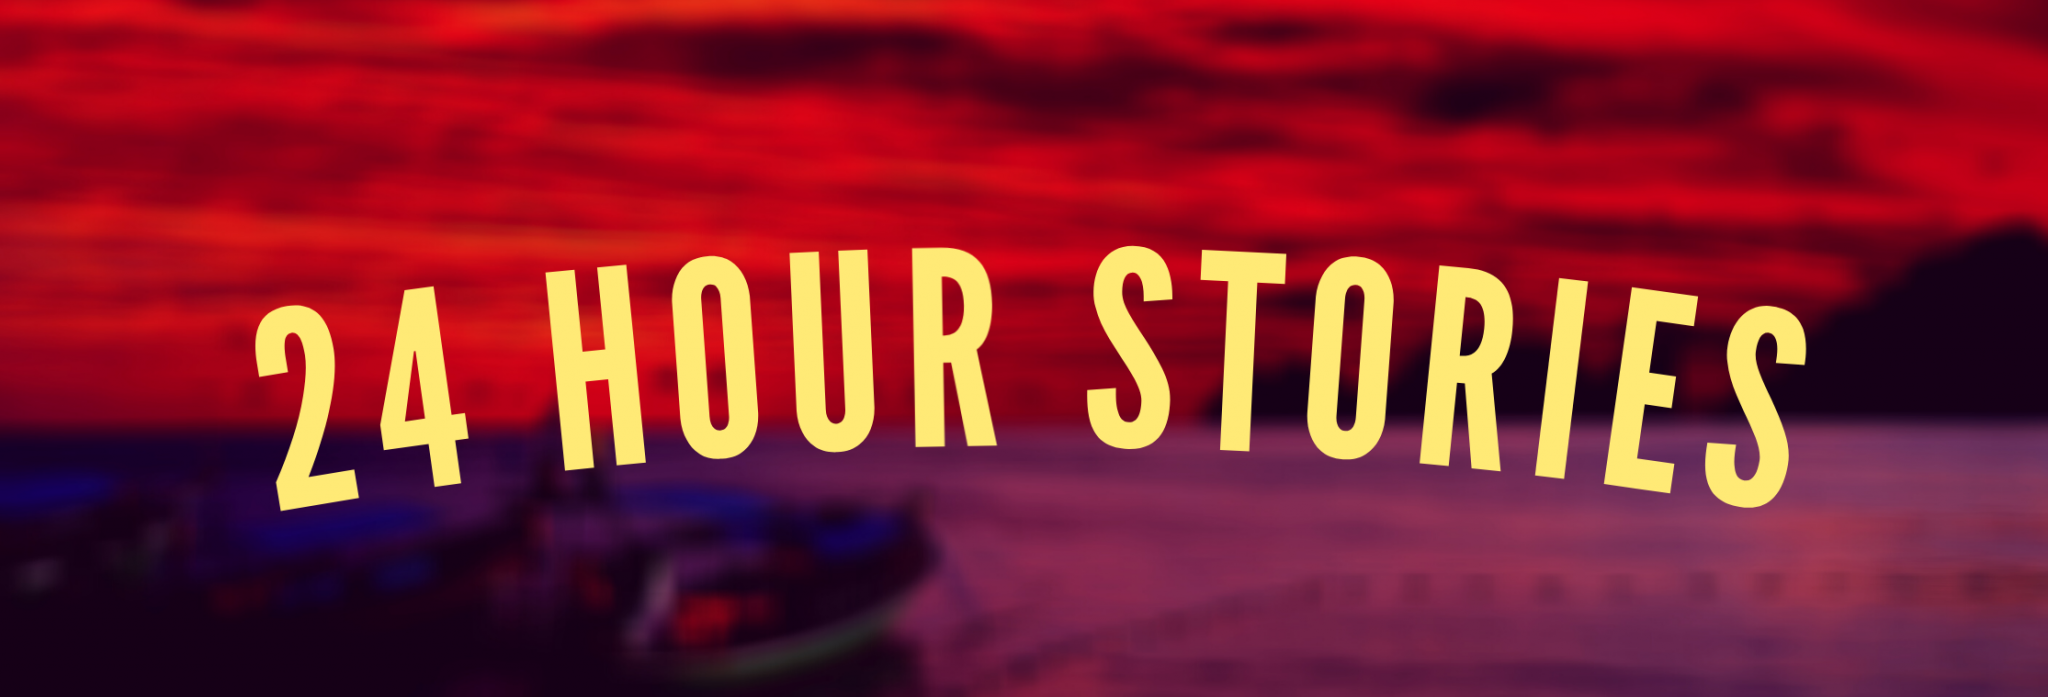 24 hour stories